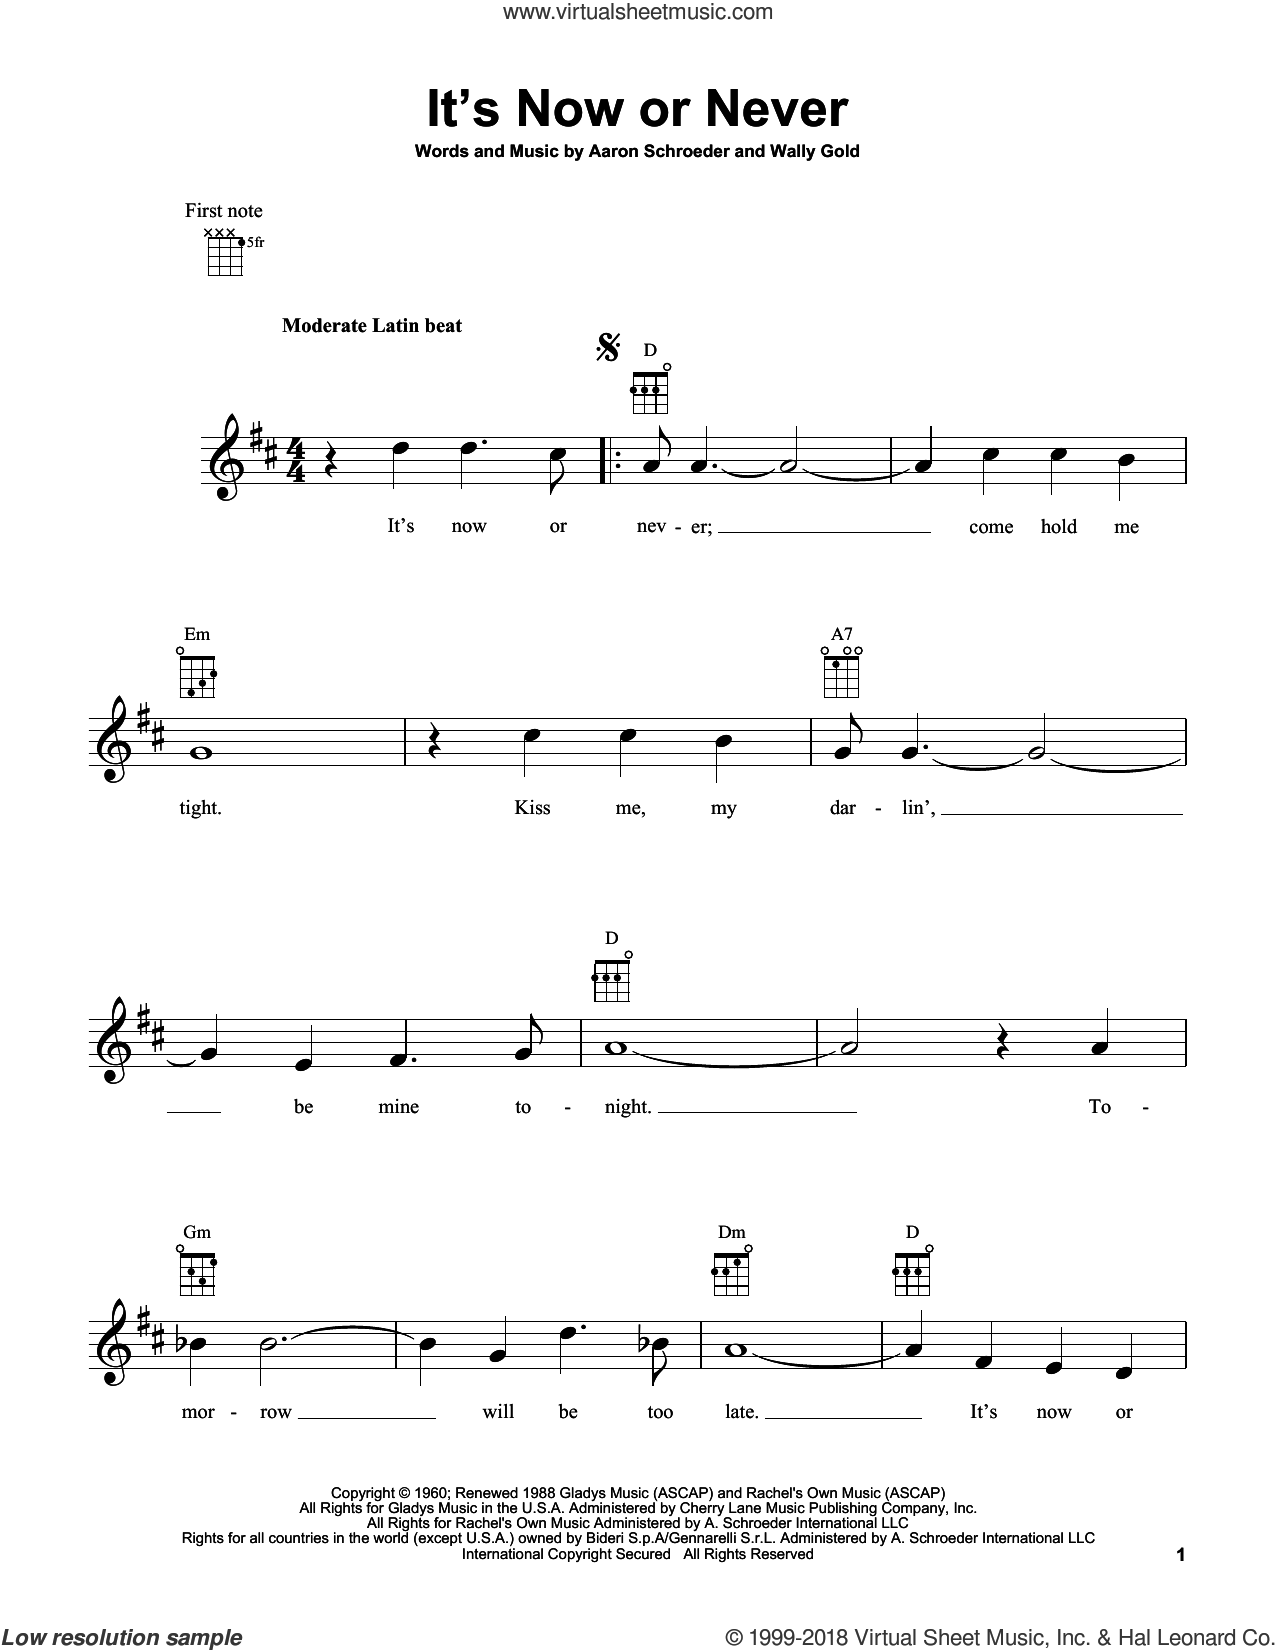 It's Now Or Never sheet music for ukulele by Elvis Presley, Aaron Schroeder and Wally Gold, intermediate skill level